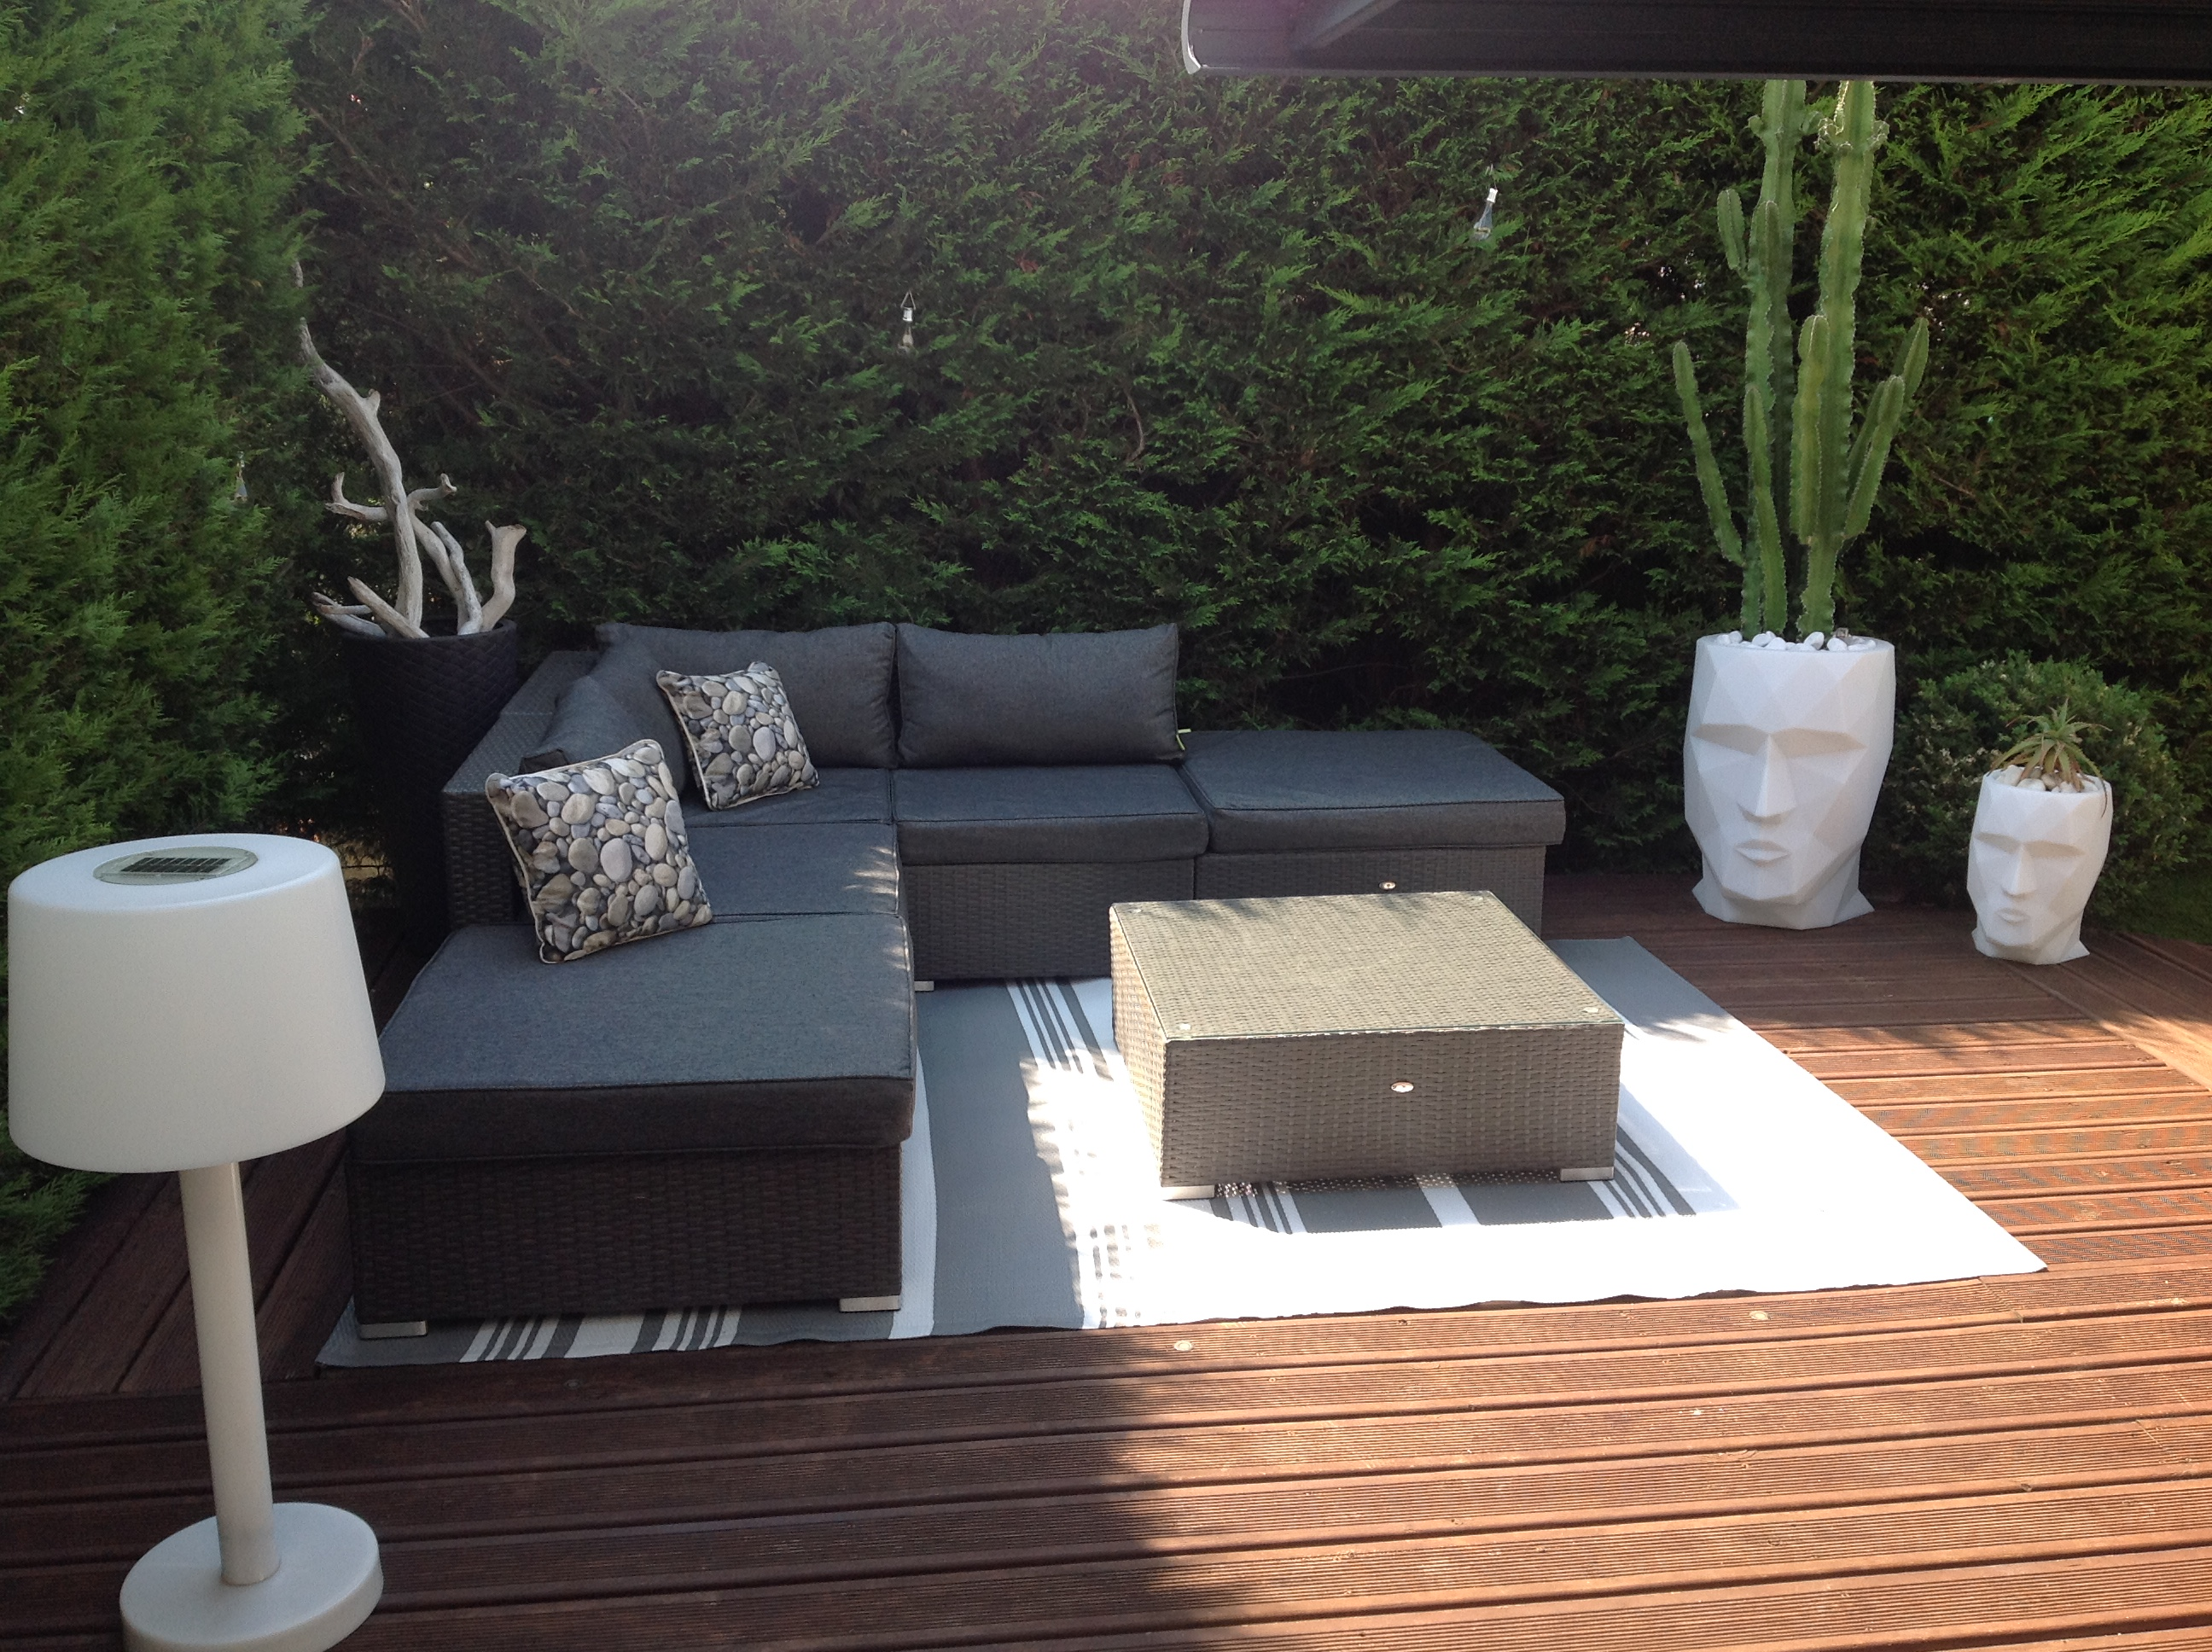 salon de jardin terrasse id es de d coration int rieure. Black Bedroom Furniture Sets. Home Design Ideas